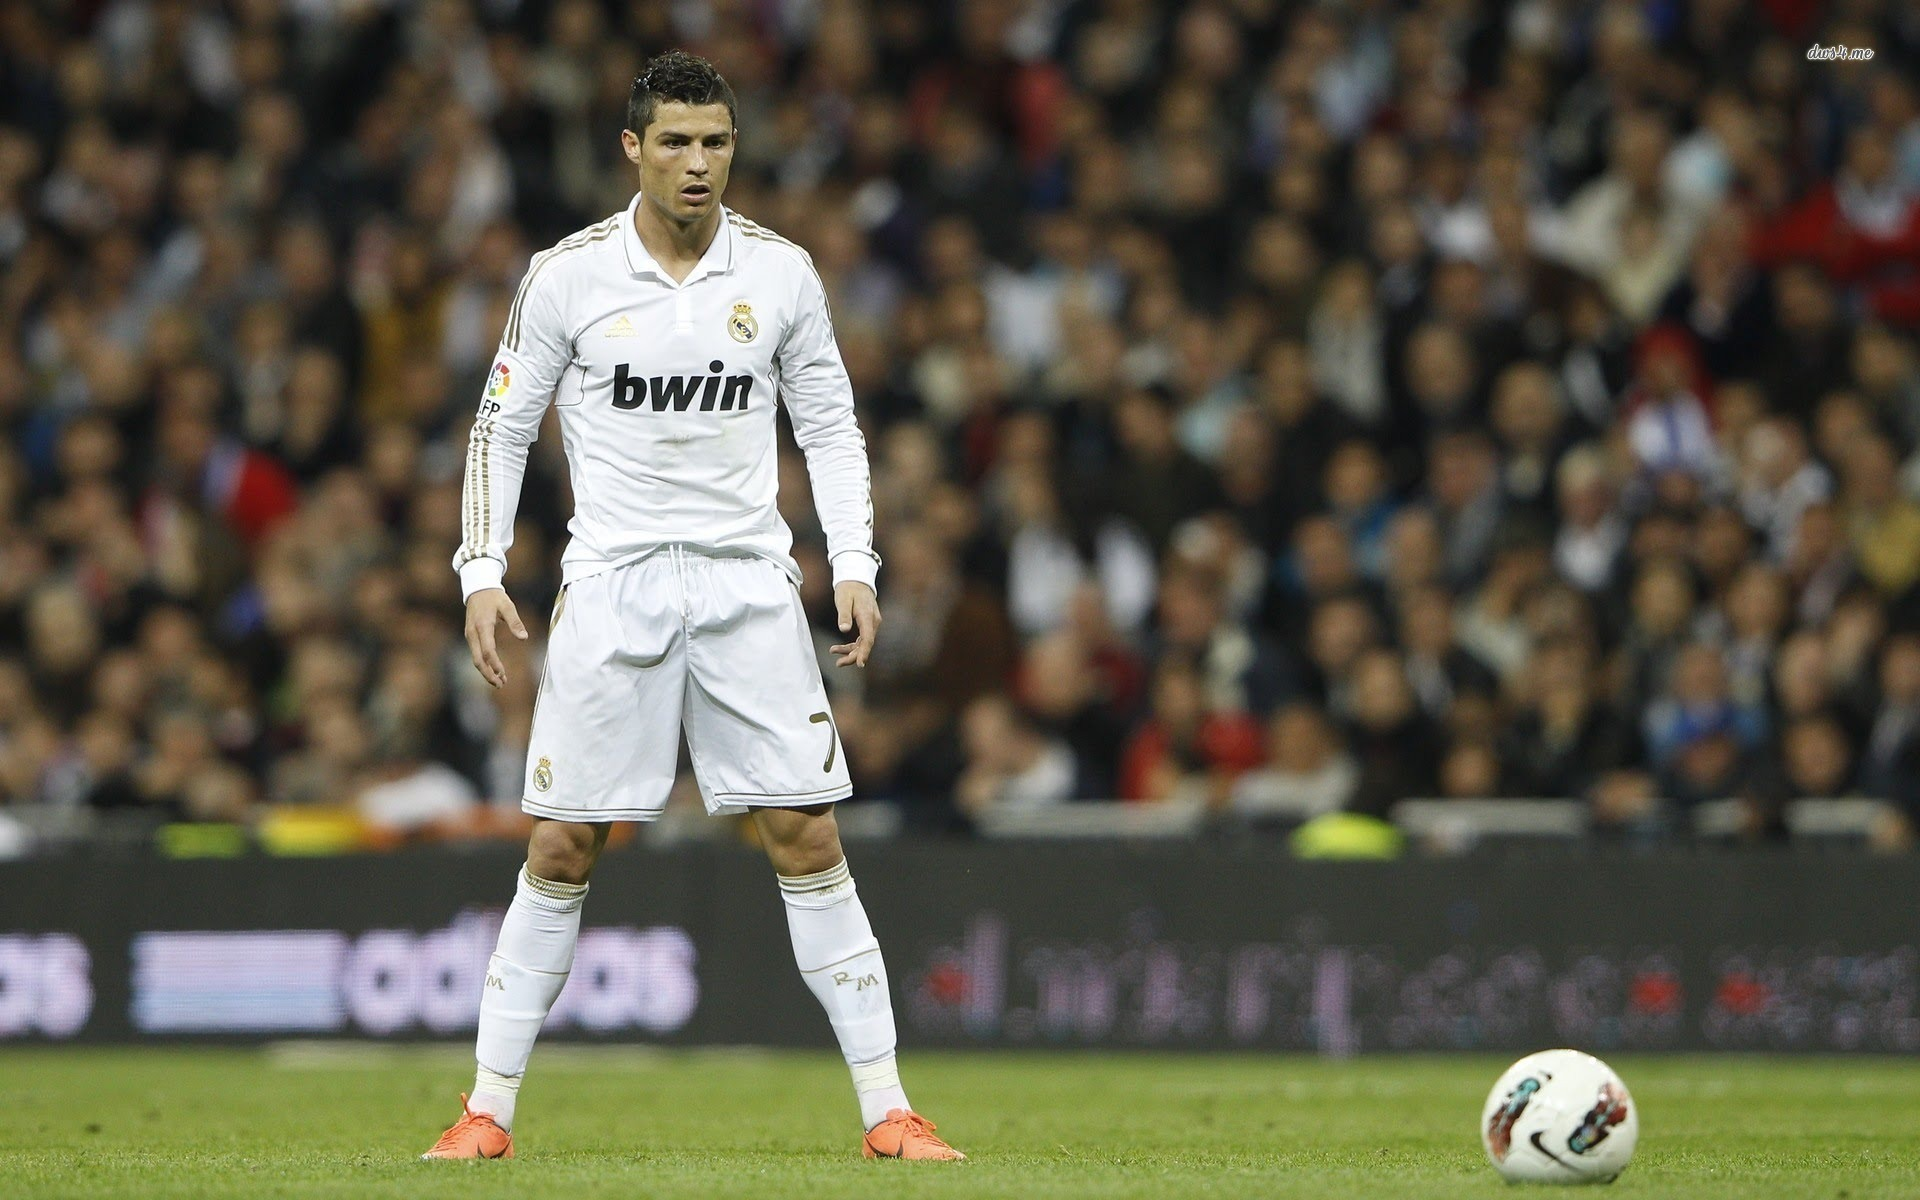 Cristiano Ronaldo Wallpapers HD penalty shoot